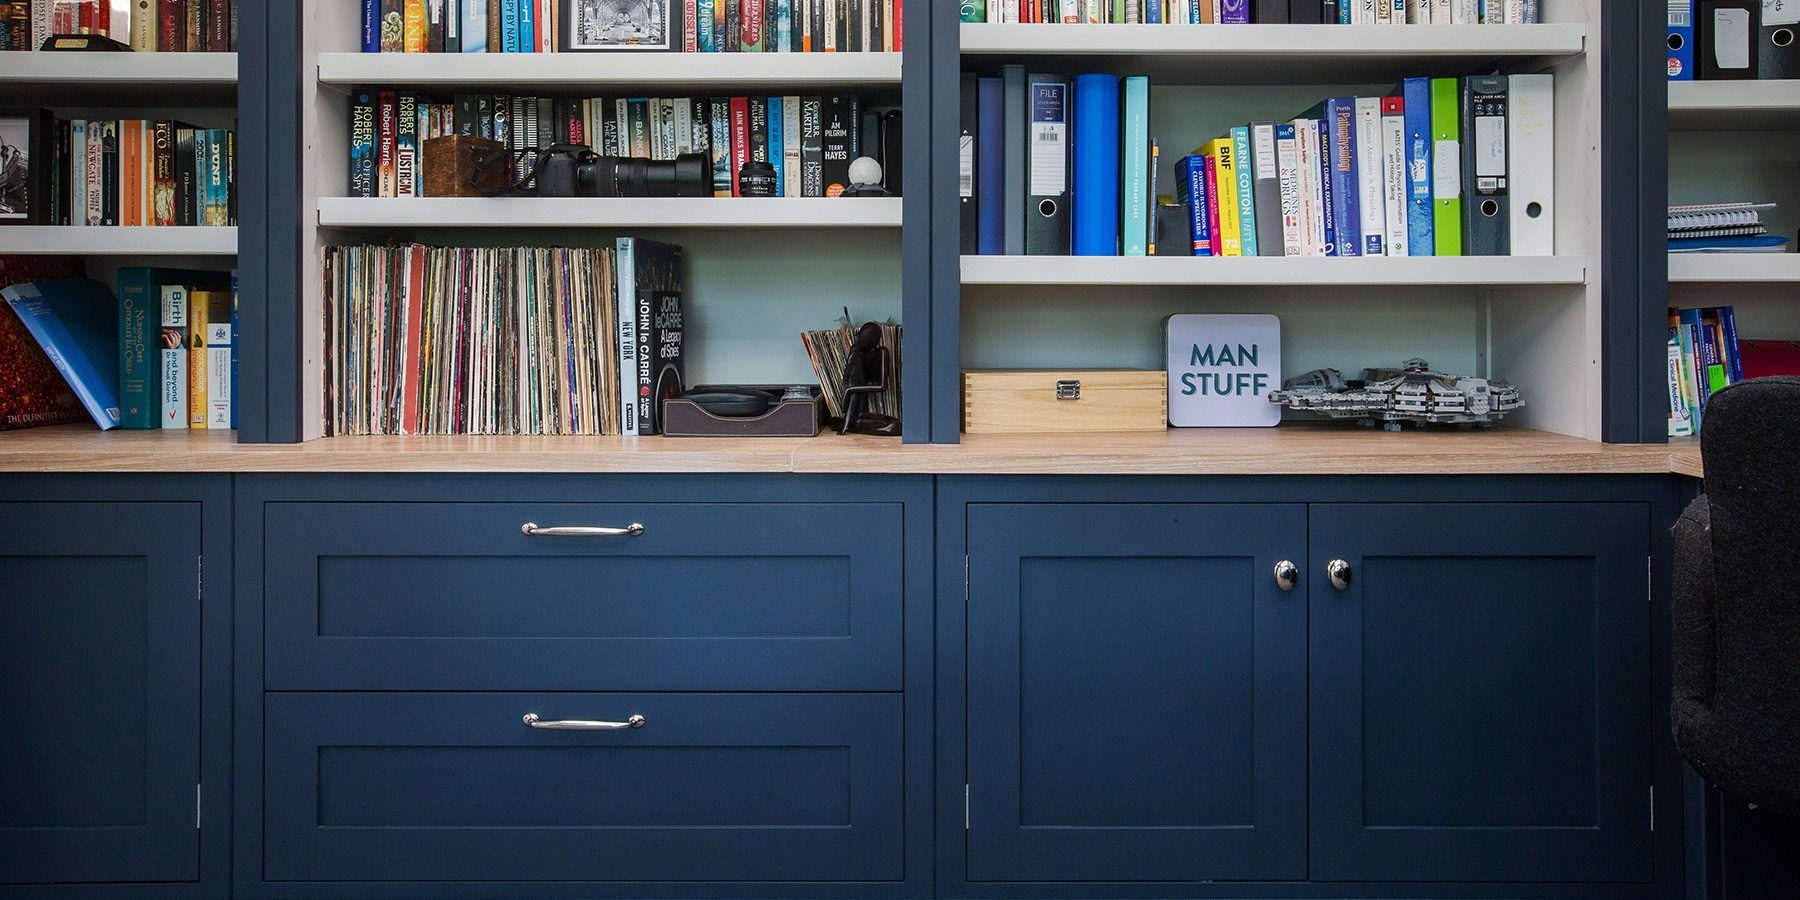 Bespoke home office | Handmade storage solutions | Burlanes - Burlanes design and create bespoke, handmade storage solutions for all rooms in your home